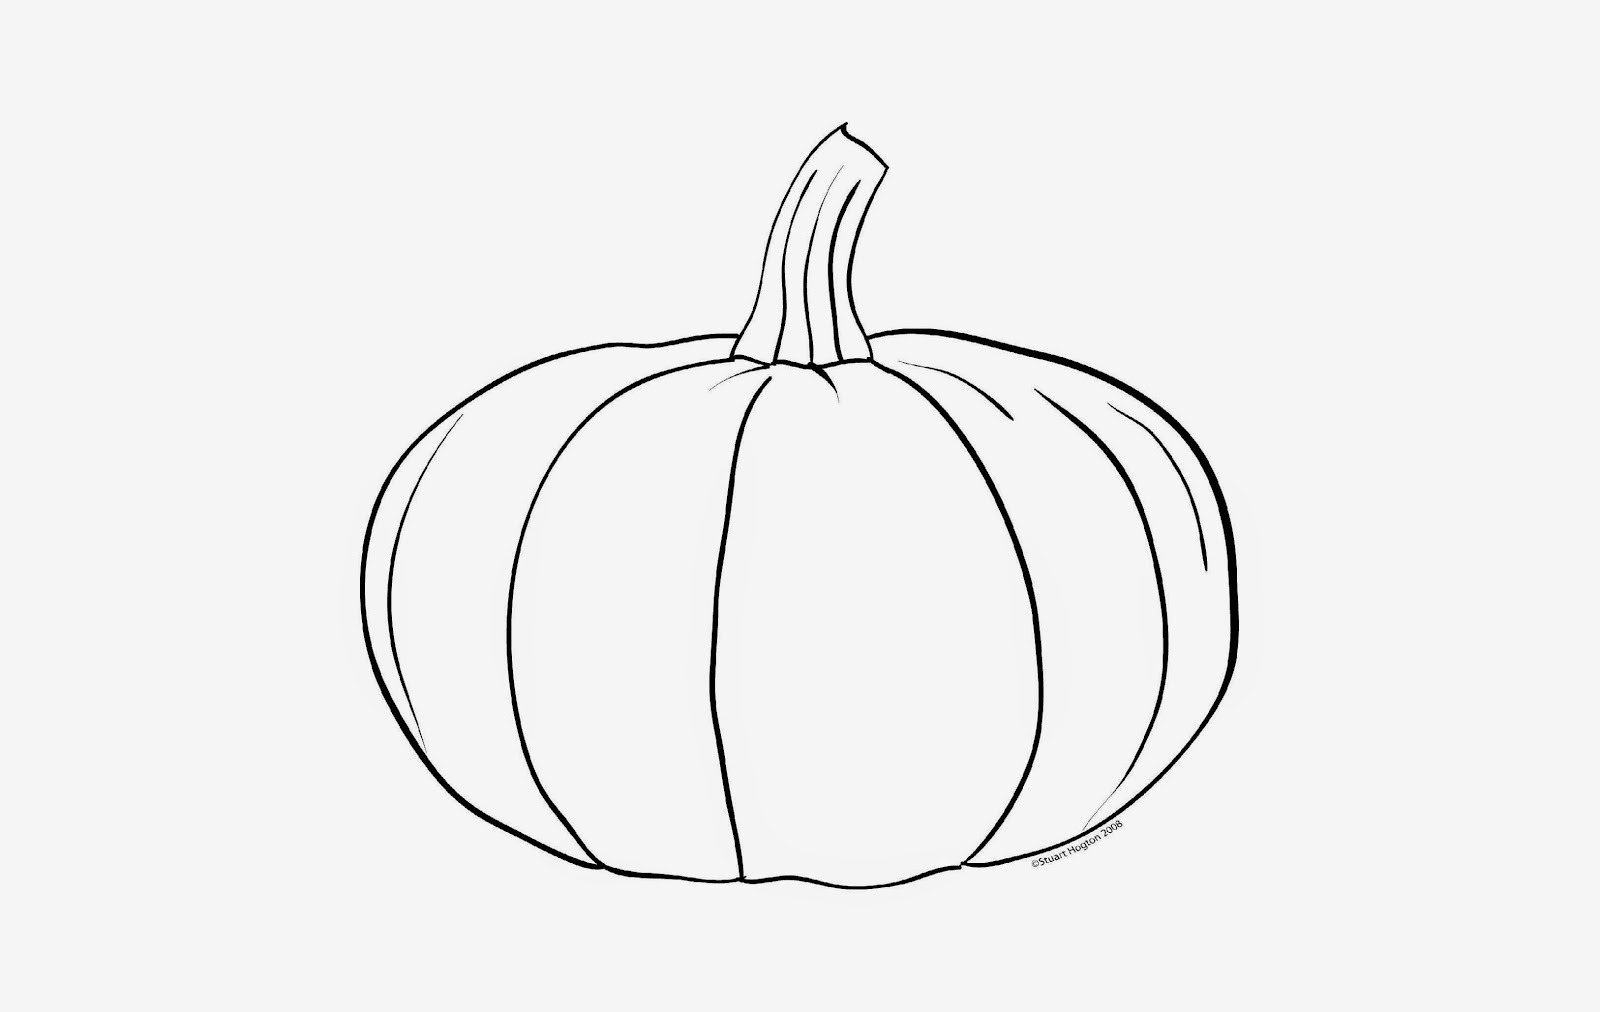 Pumpkin coloring sheet free coloring sheet for Pumpkin coloring pages free printable